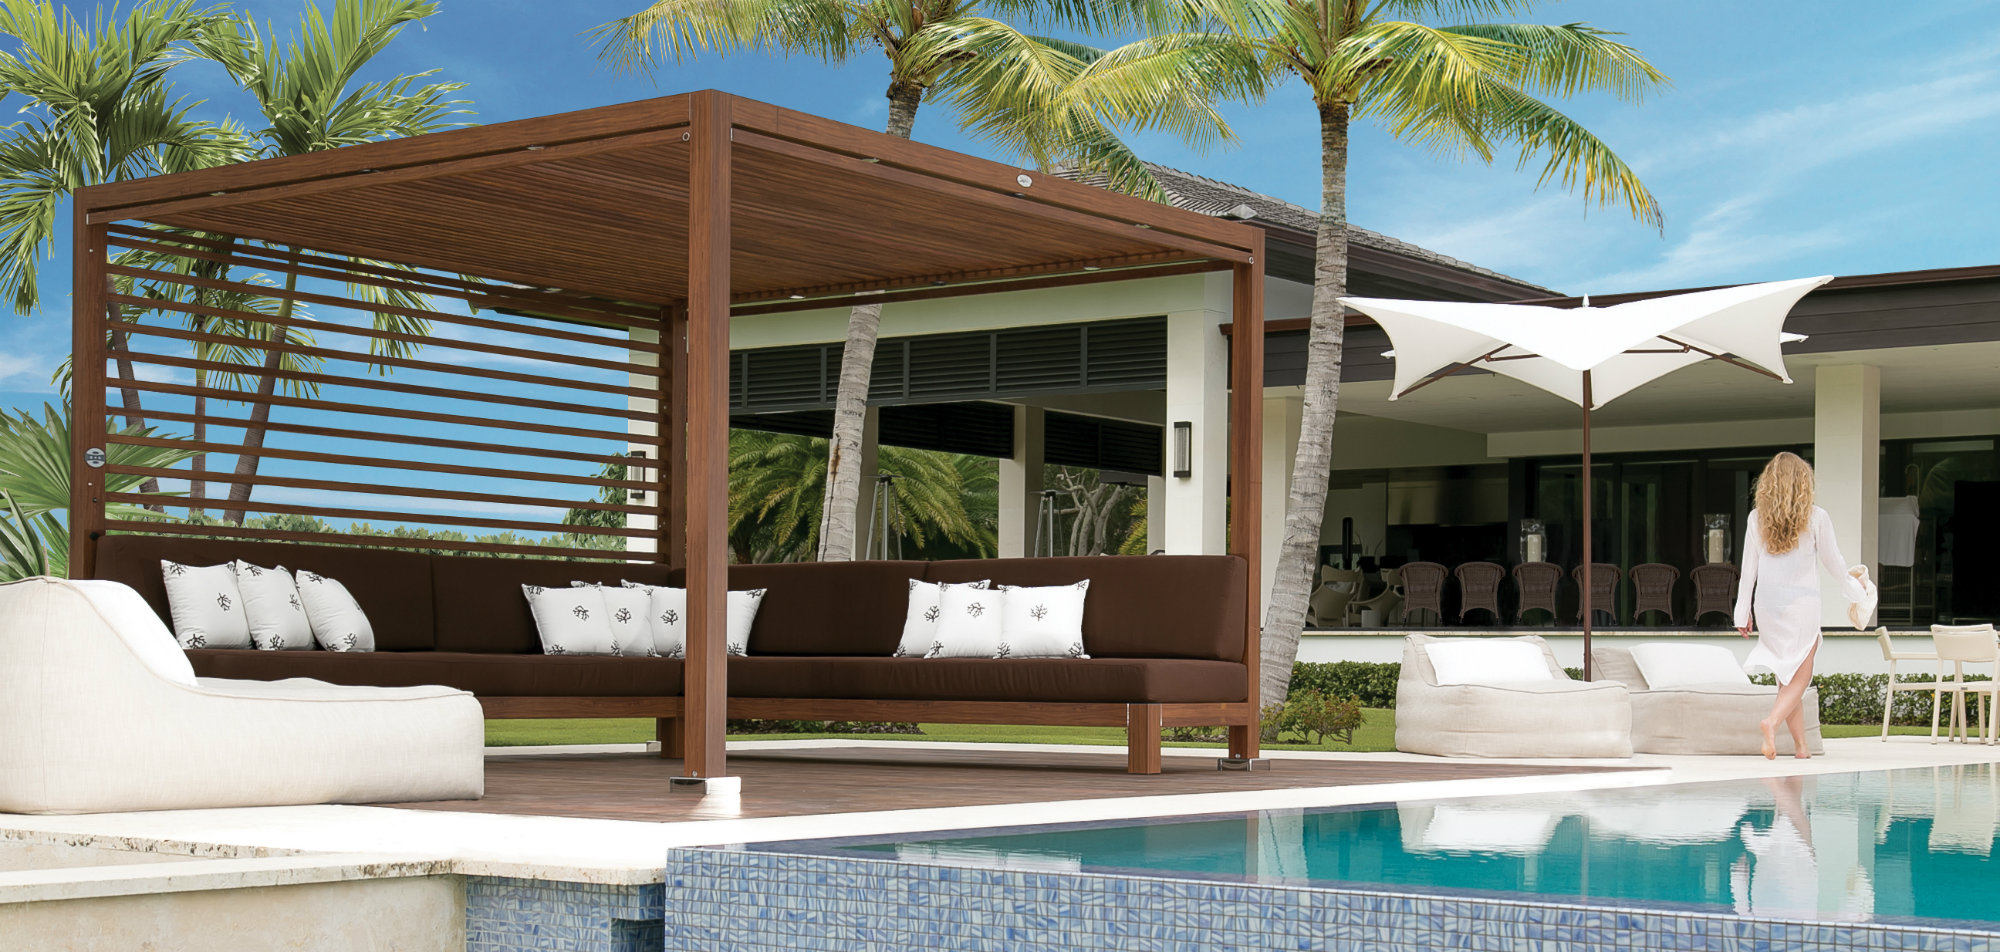 Tuuci Releases Newest Outdoor Cabana Pool Amp Spa News